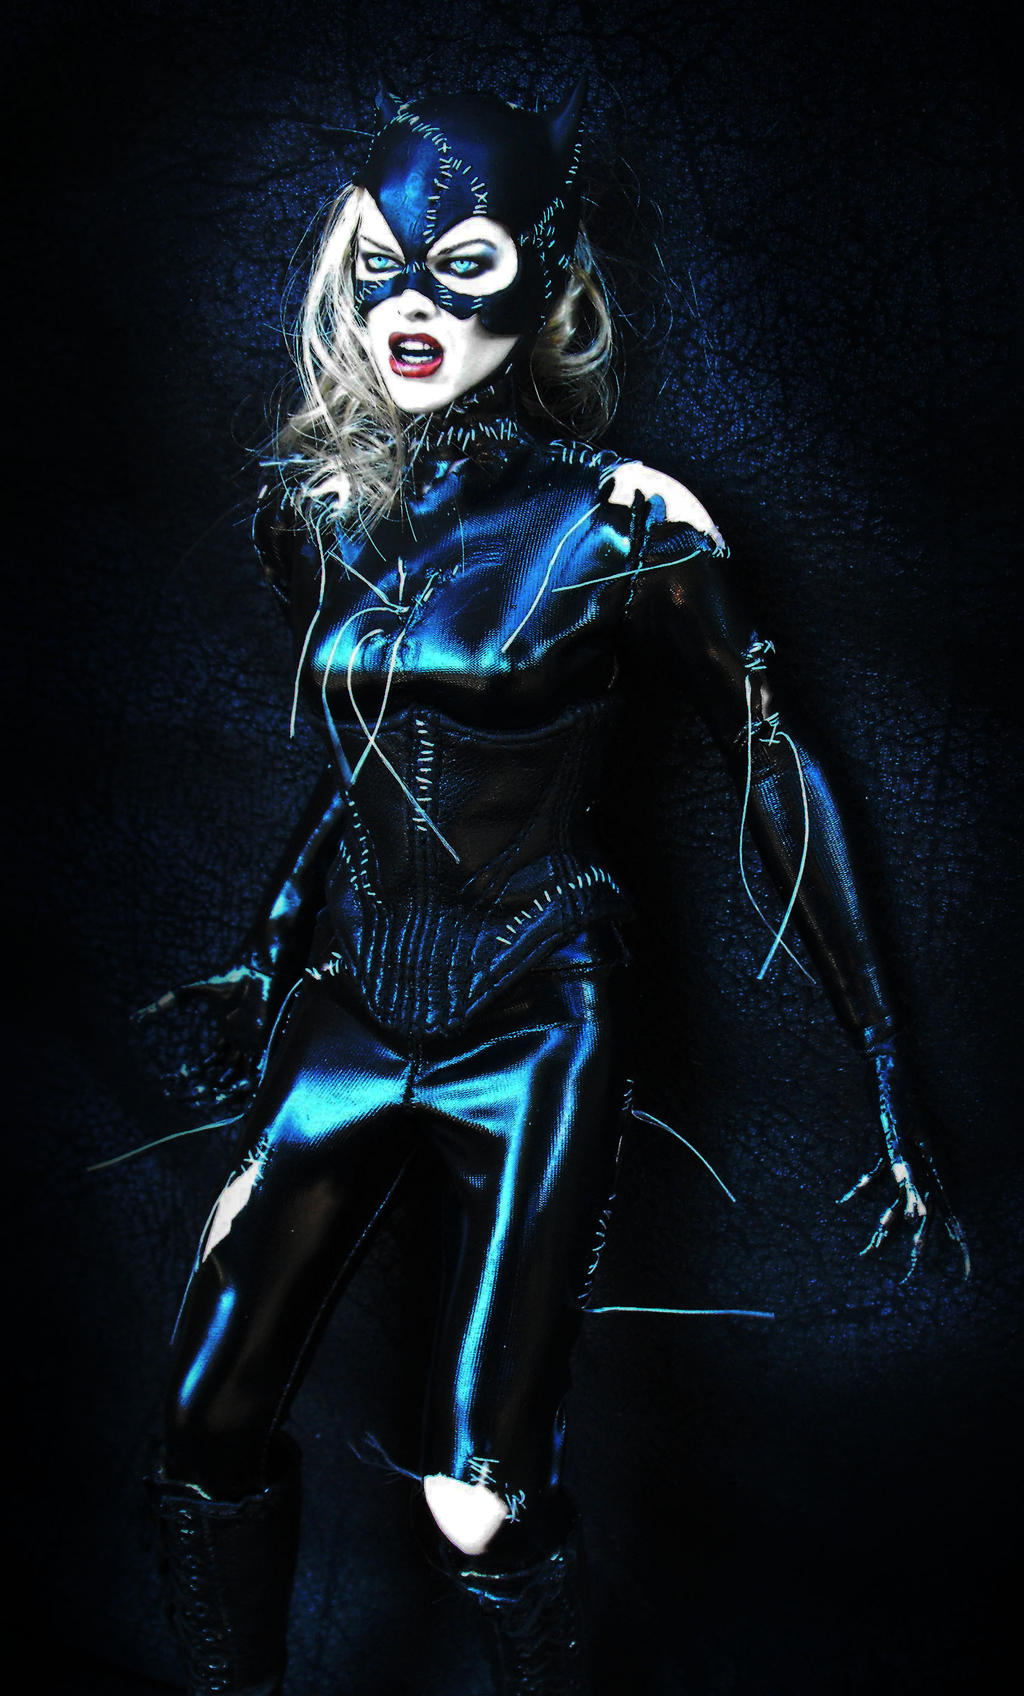 Buy a Catwoman costume to join the long line of attractive actresses who have donned the outfit: Anne Hathaway, Halle Berry, Michelle Pfeiffer and Julie Newmar. If you are looking for a sexy Halloween costume from the Batman series, then shop our cat woman costumes!